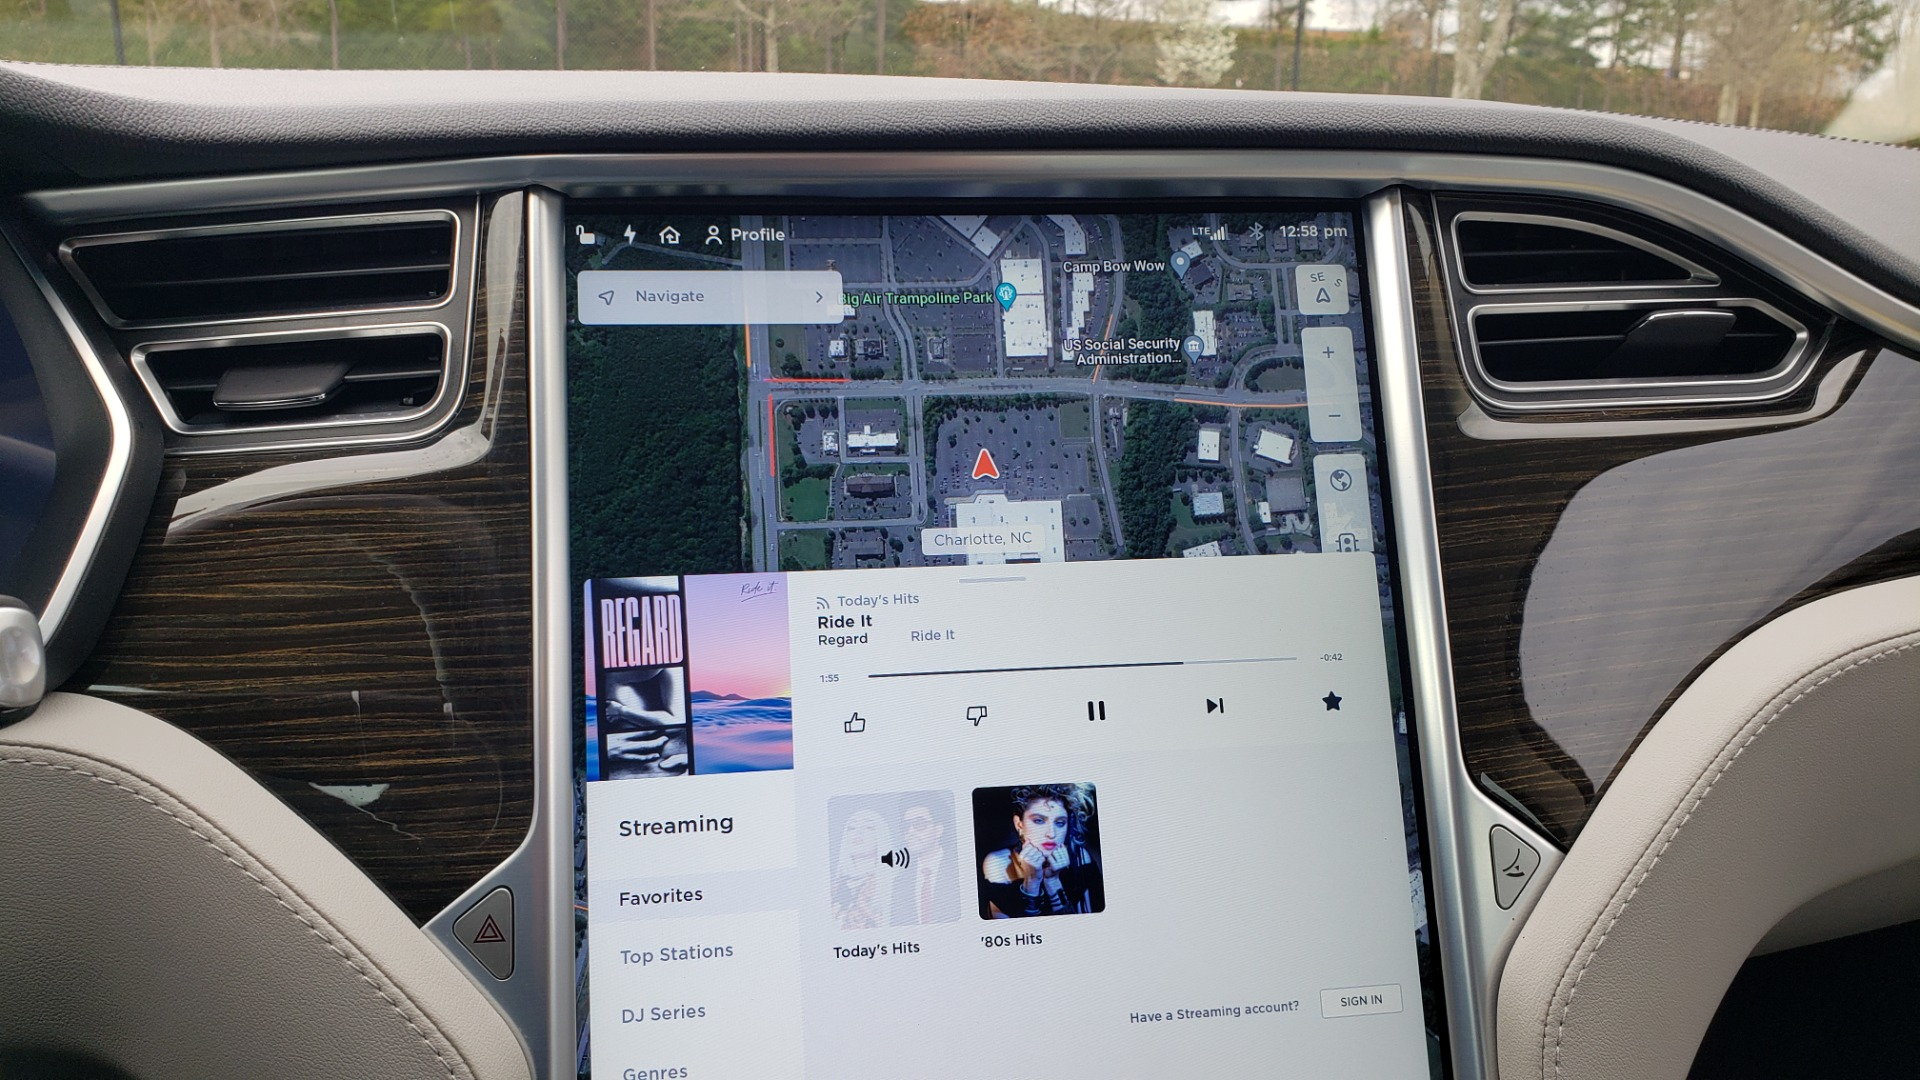 Used 2014 Tesla MODEL S 60 kWh BATTERY / TECH / NAV / SUBZERO / SUNROOF / REARVIEW for sale Sold at Formula Imports in Charlotte NC 28227 43